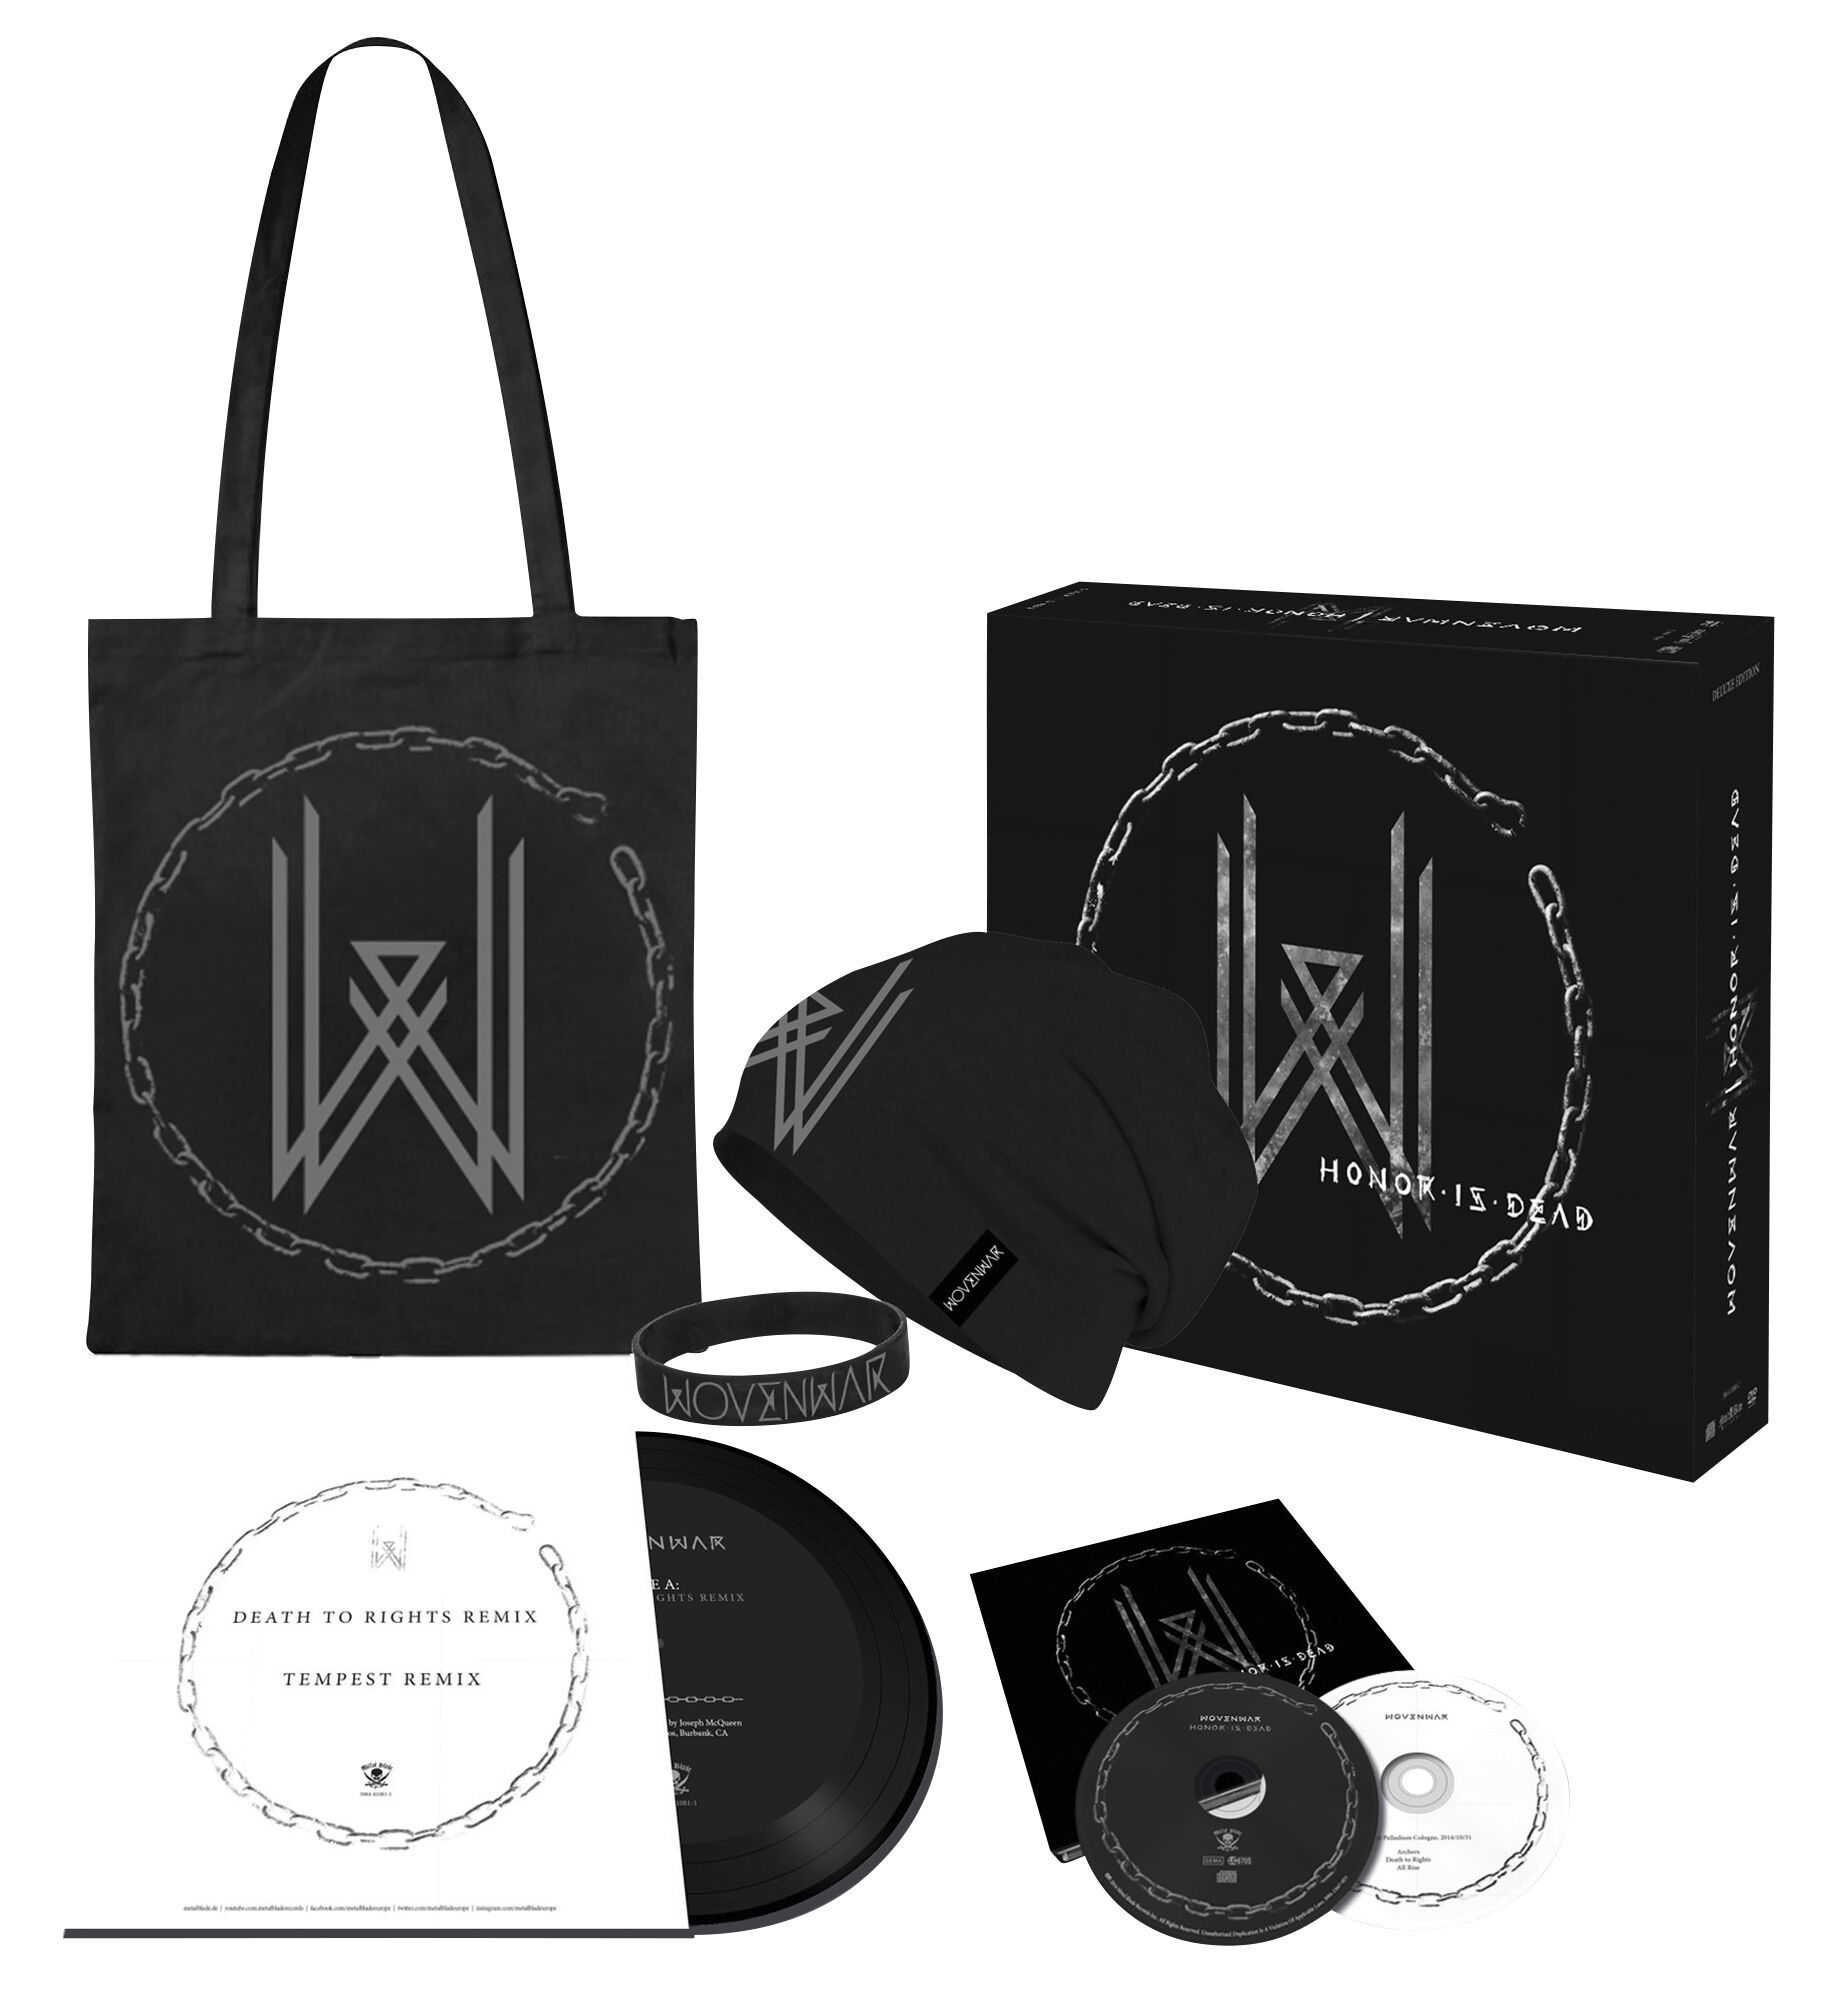 Image of Wovenwar Honor is dead CD & DVD & 7 inch Standard